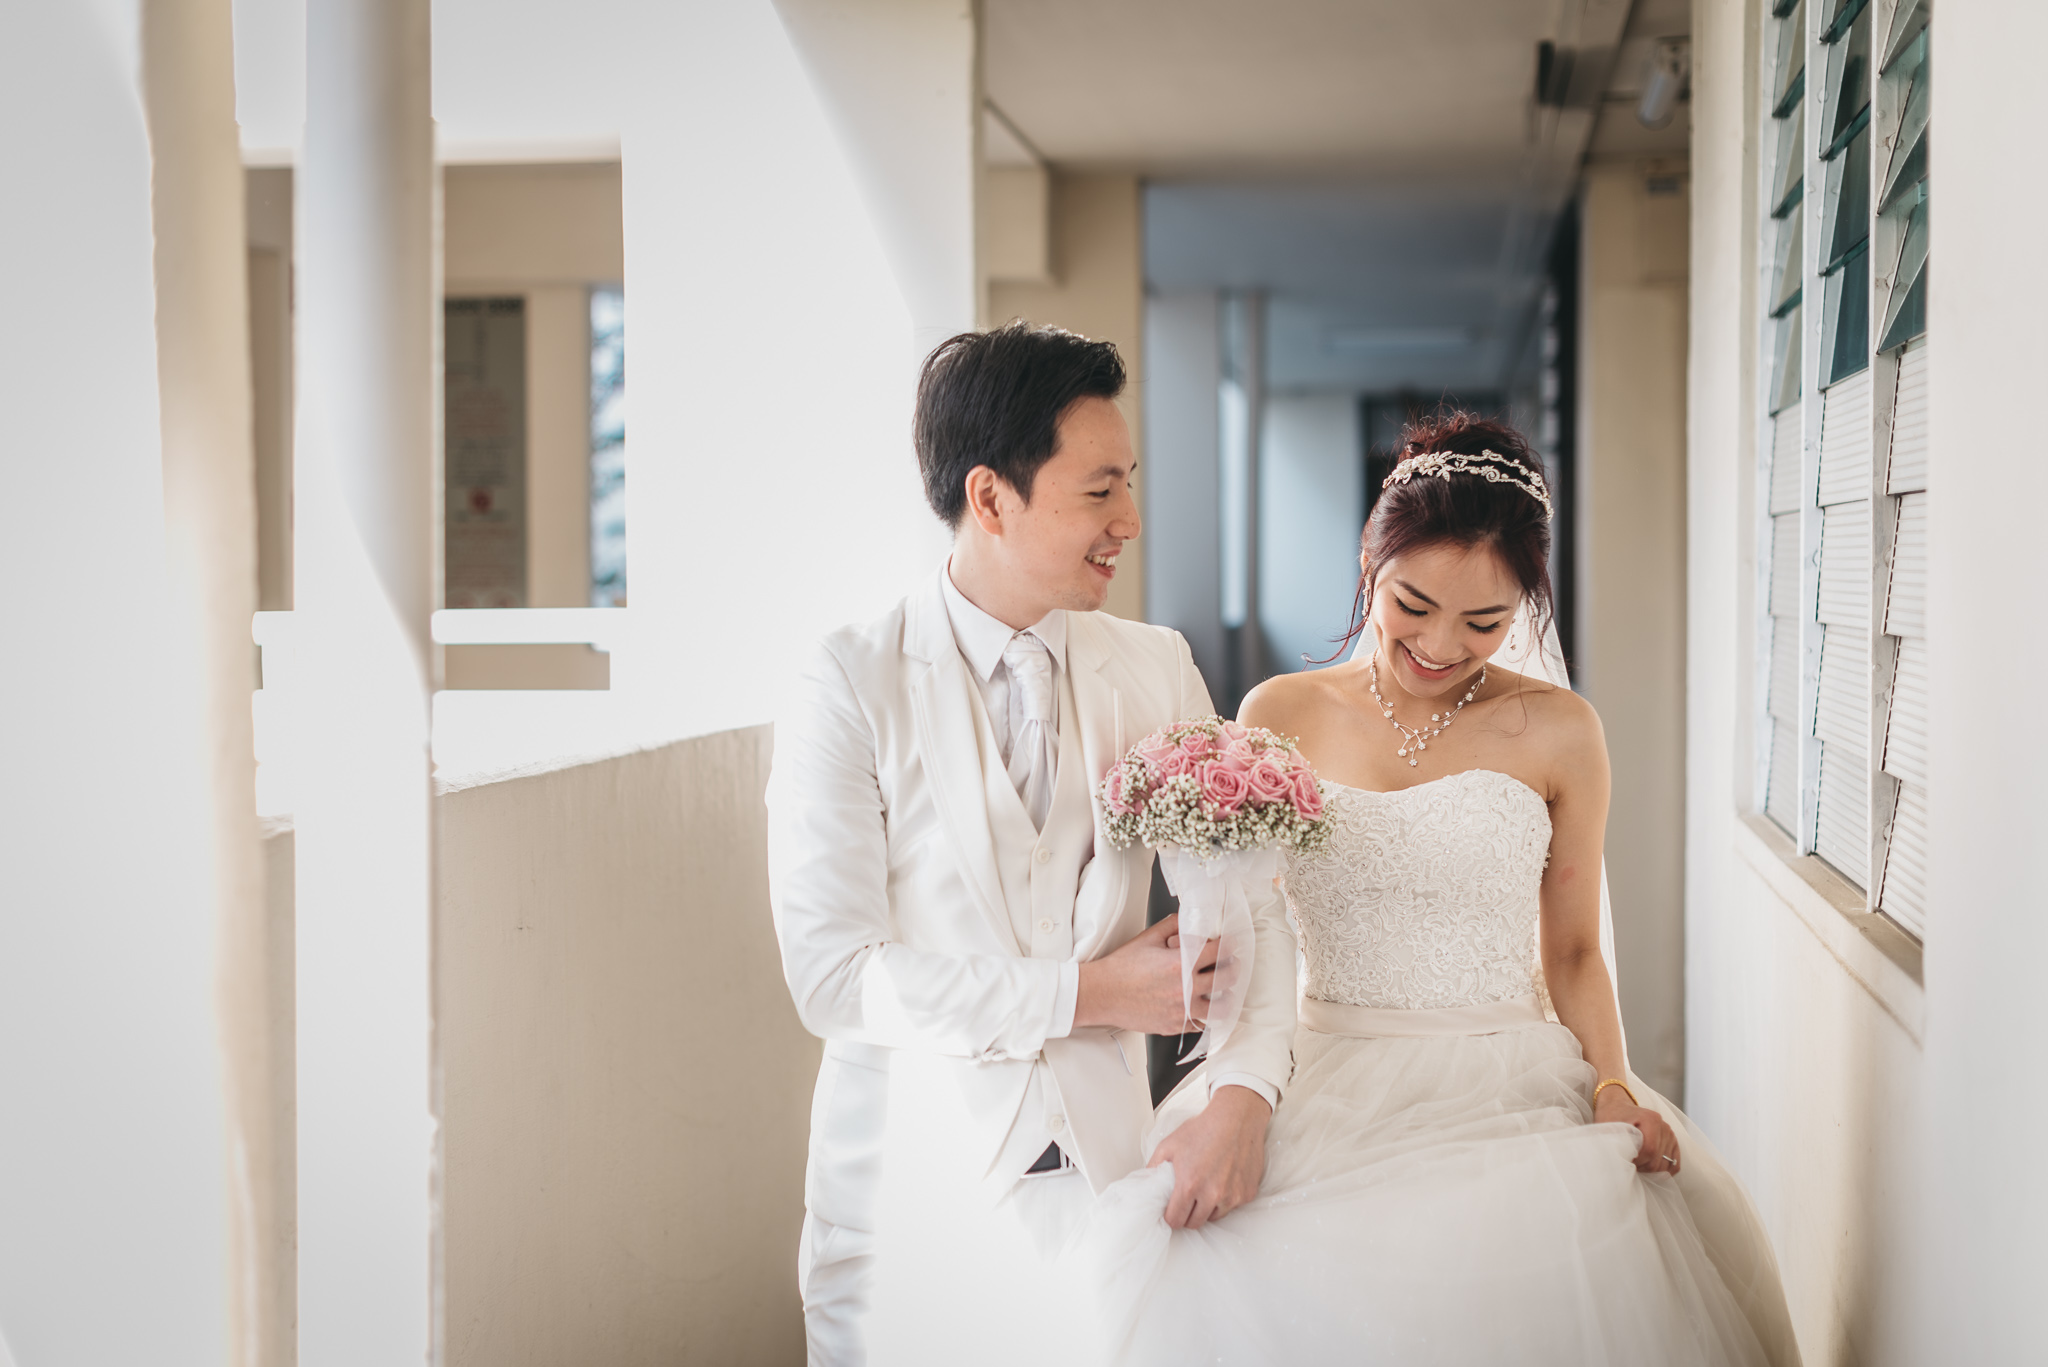 Fiona & Terence Wedding Day Highlights (resized for sharing) - 130.jpg